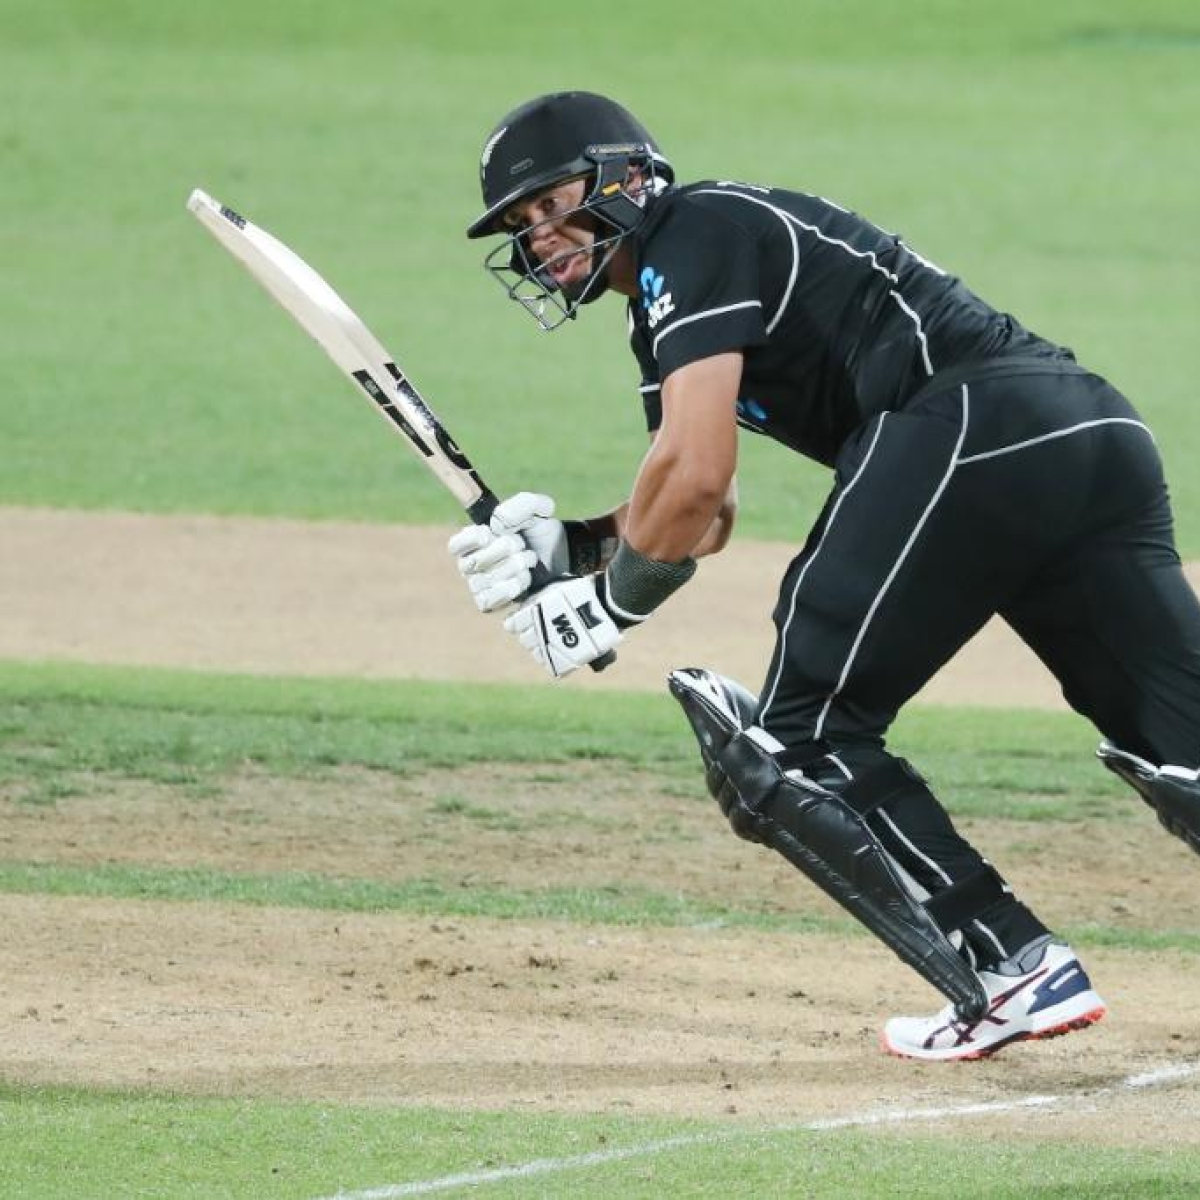 NZ vs IND 1st ODI: Centurion Ross Taylor guides Kiwis to 4-wicket win over Men in Blue